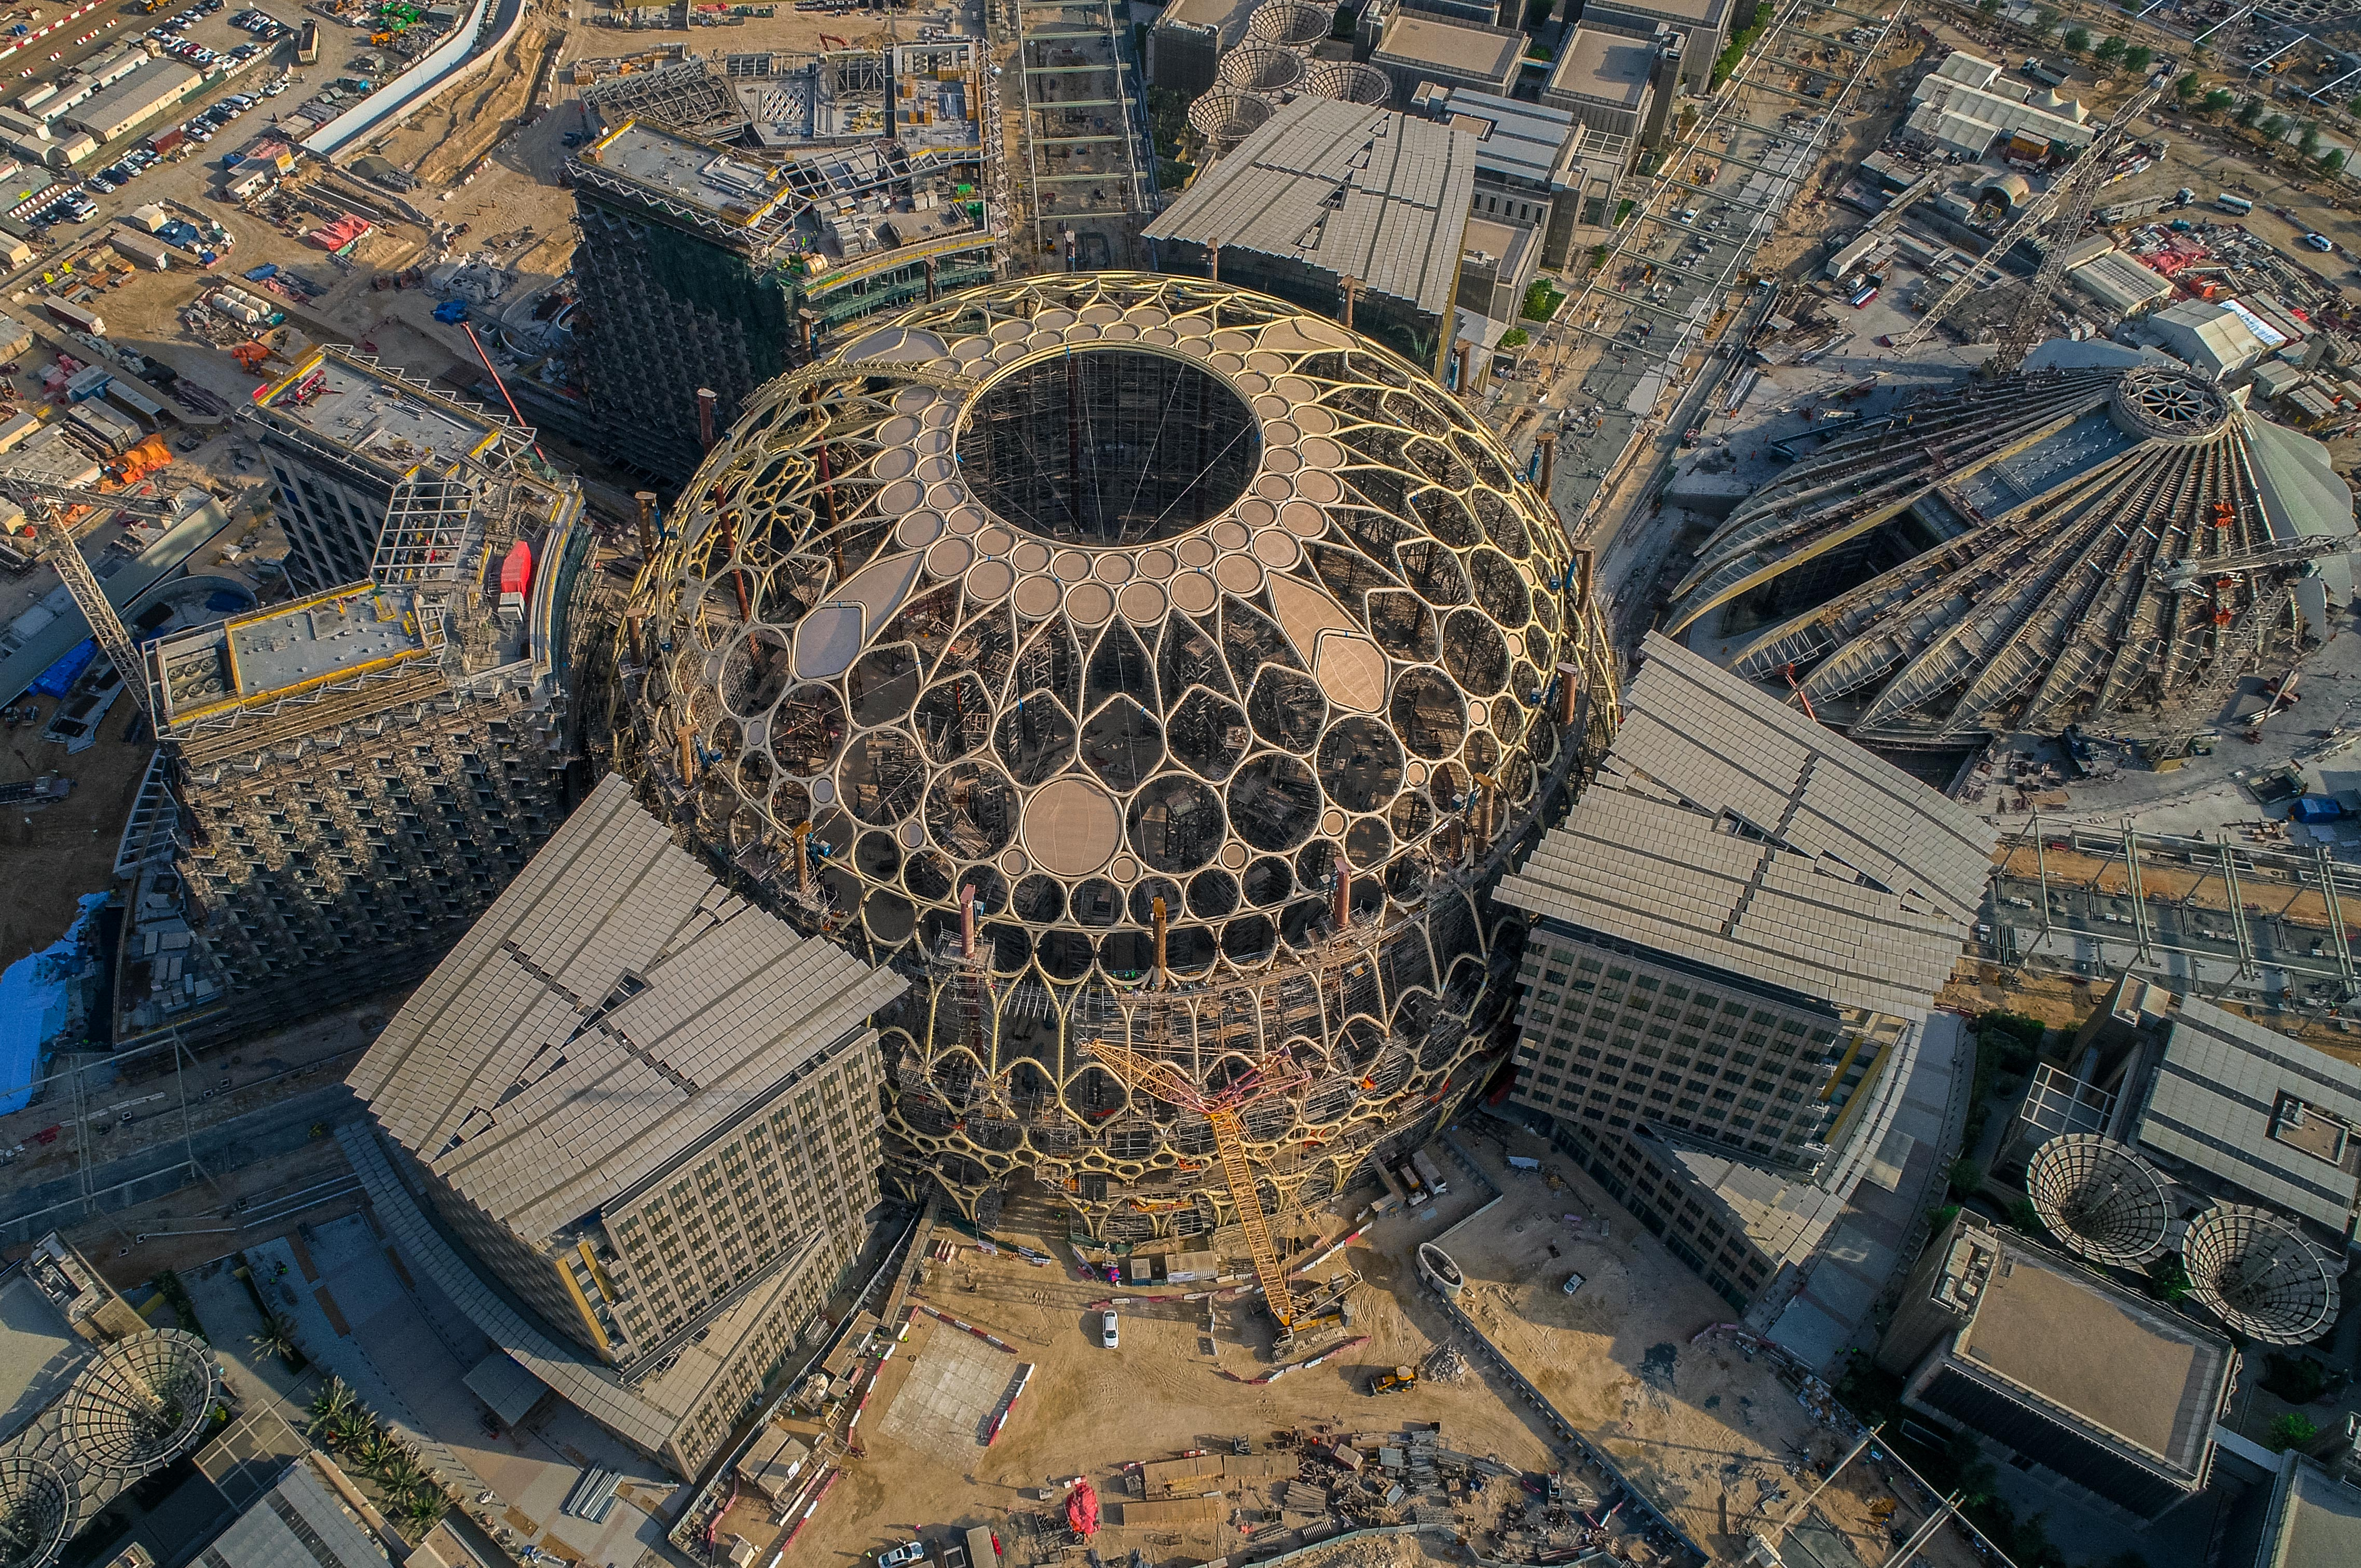 Aerial image of the main dome at Expo 2020 Dubai